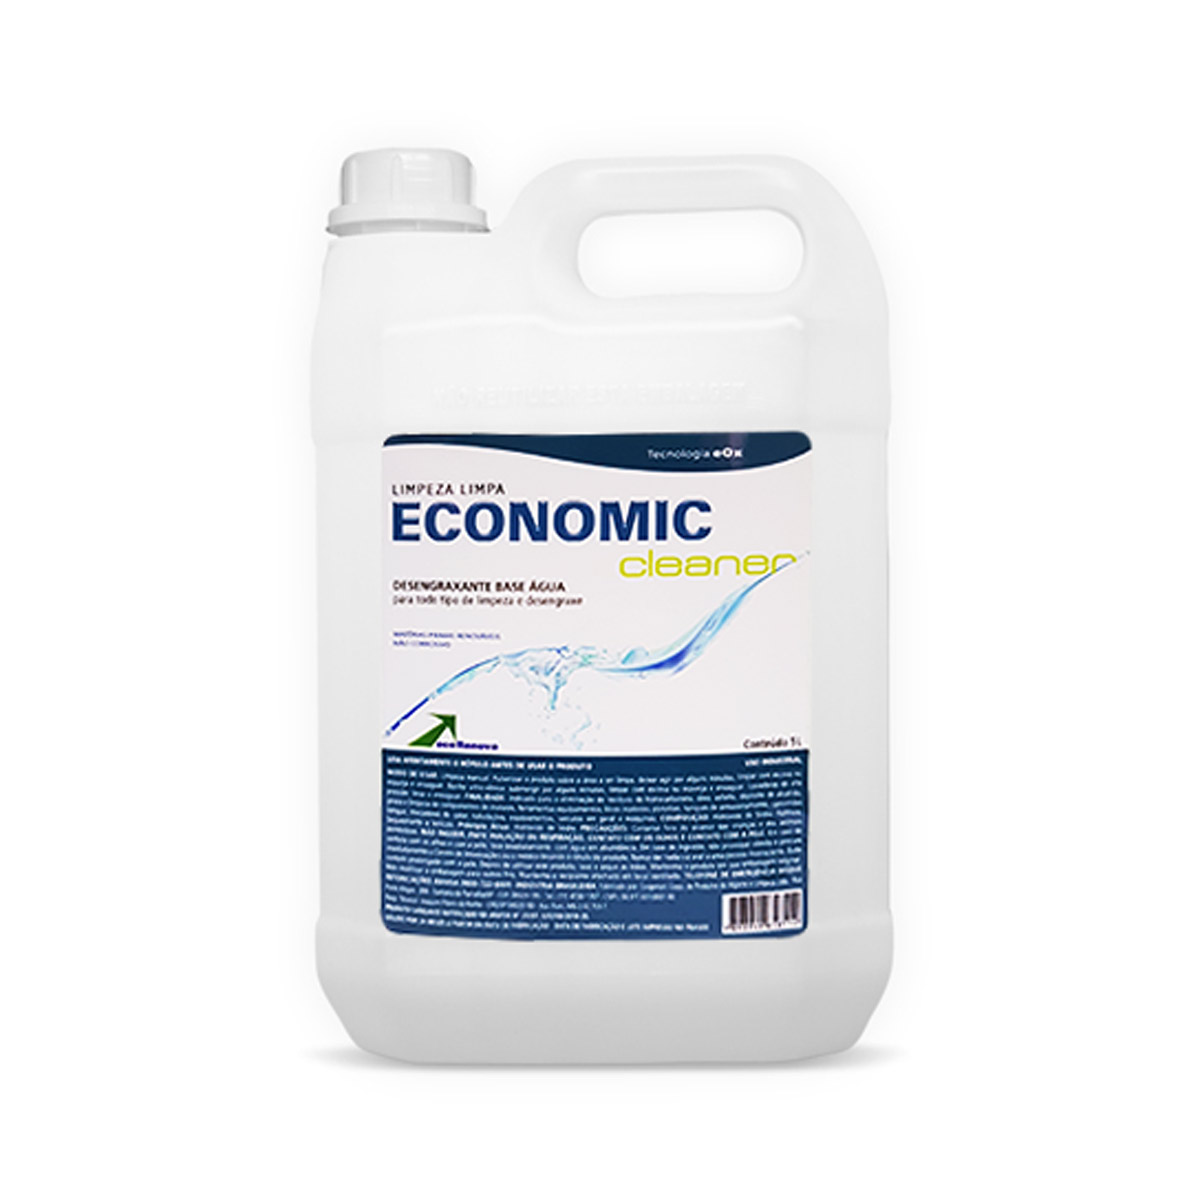 Desengraxante Ecorenova Economic Cleaner - Galão 5L